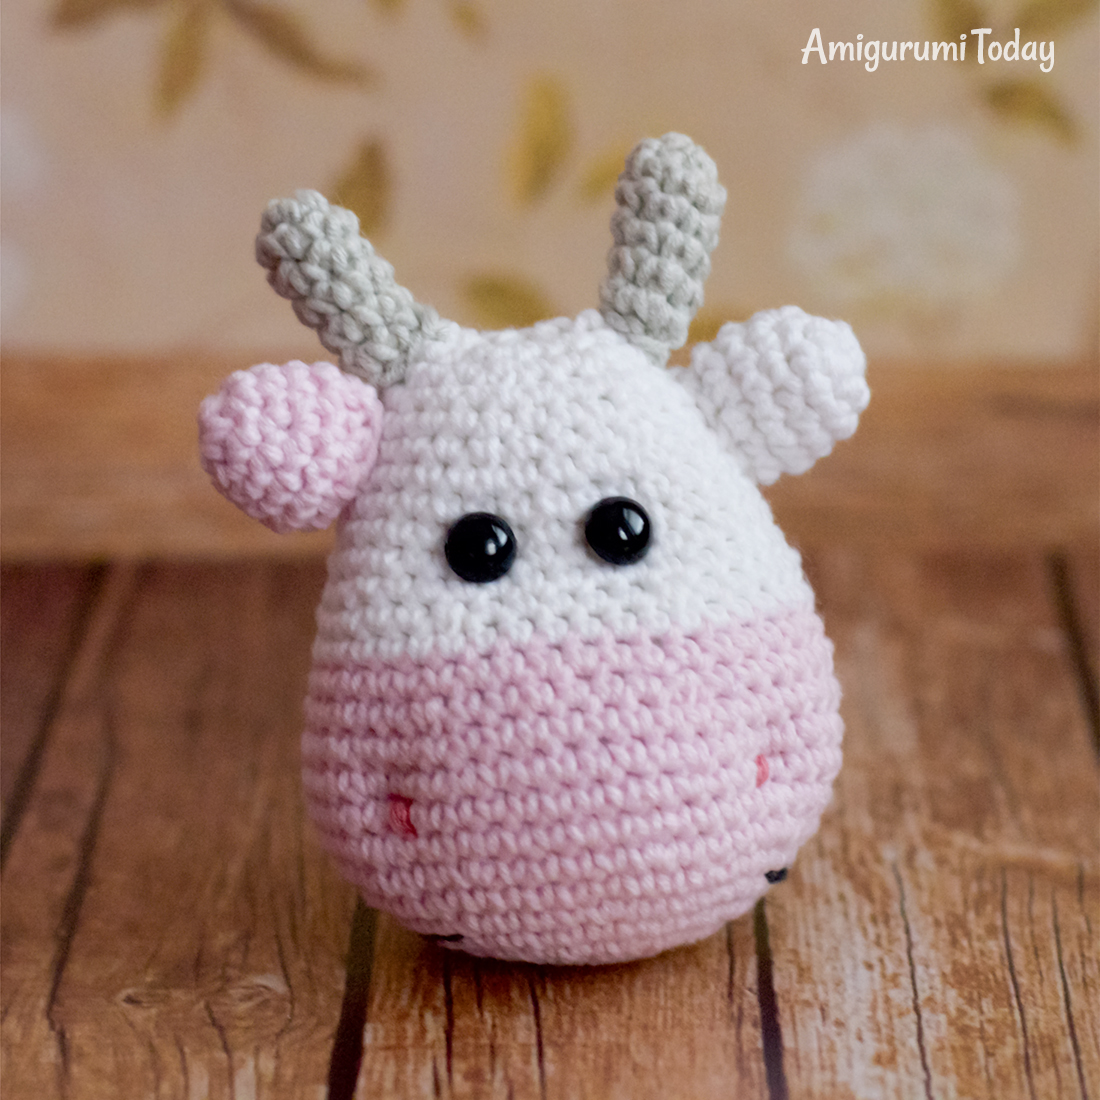 Alpine Cow crochet pattern - Head